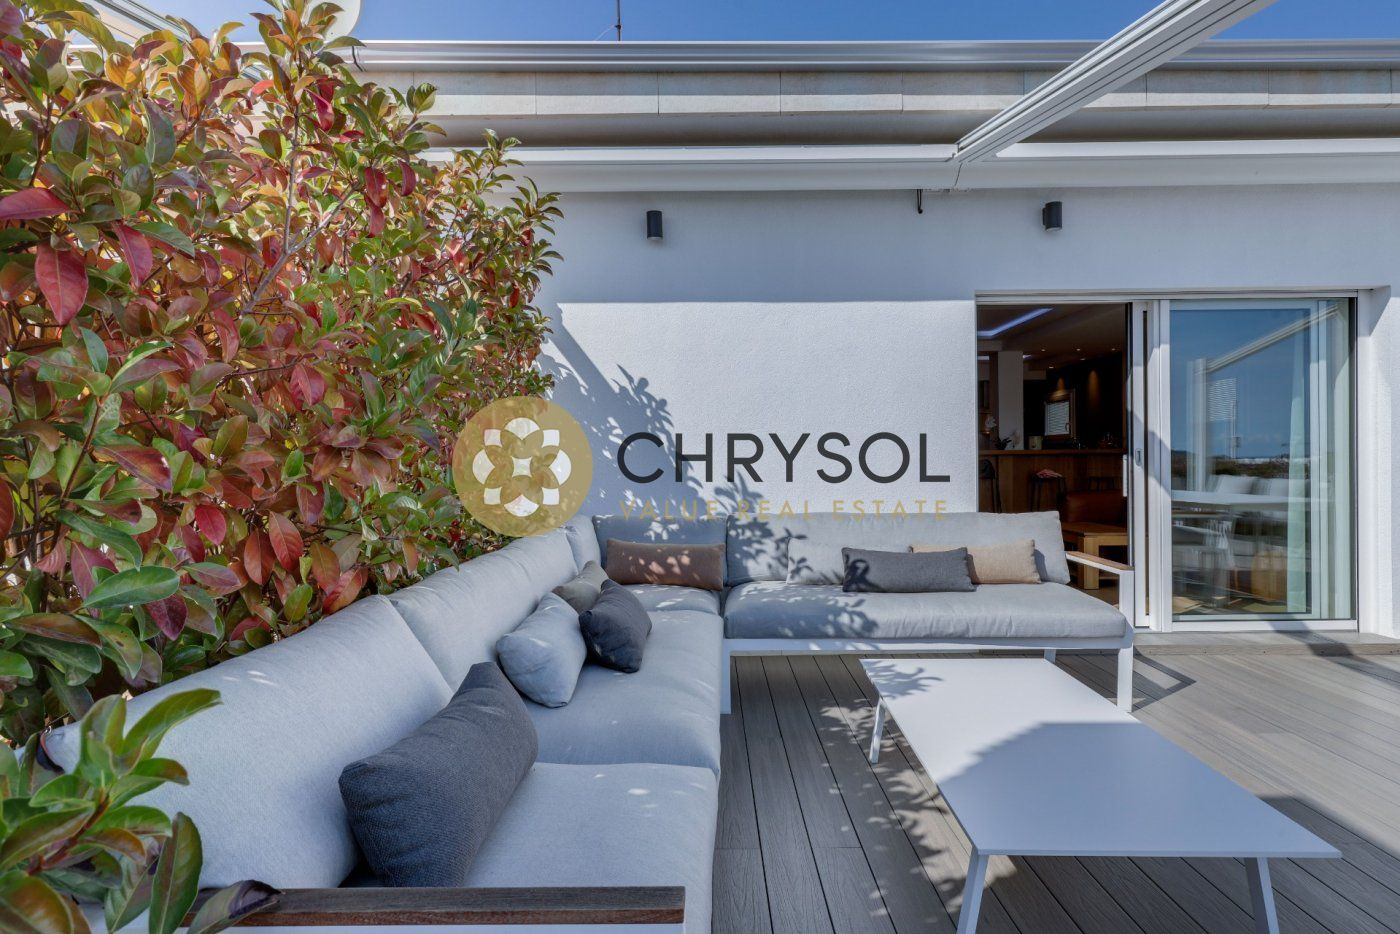 Photogallery - 33 - Chrysol Value